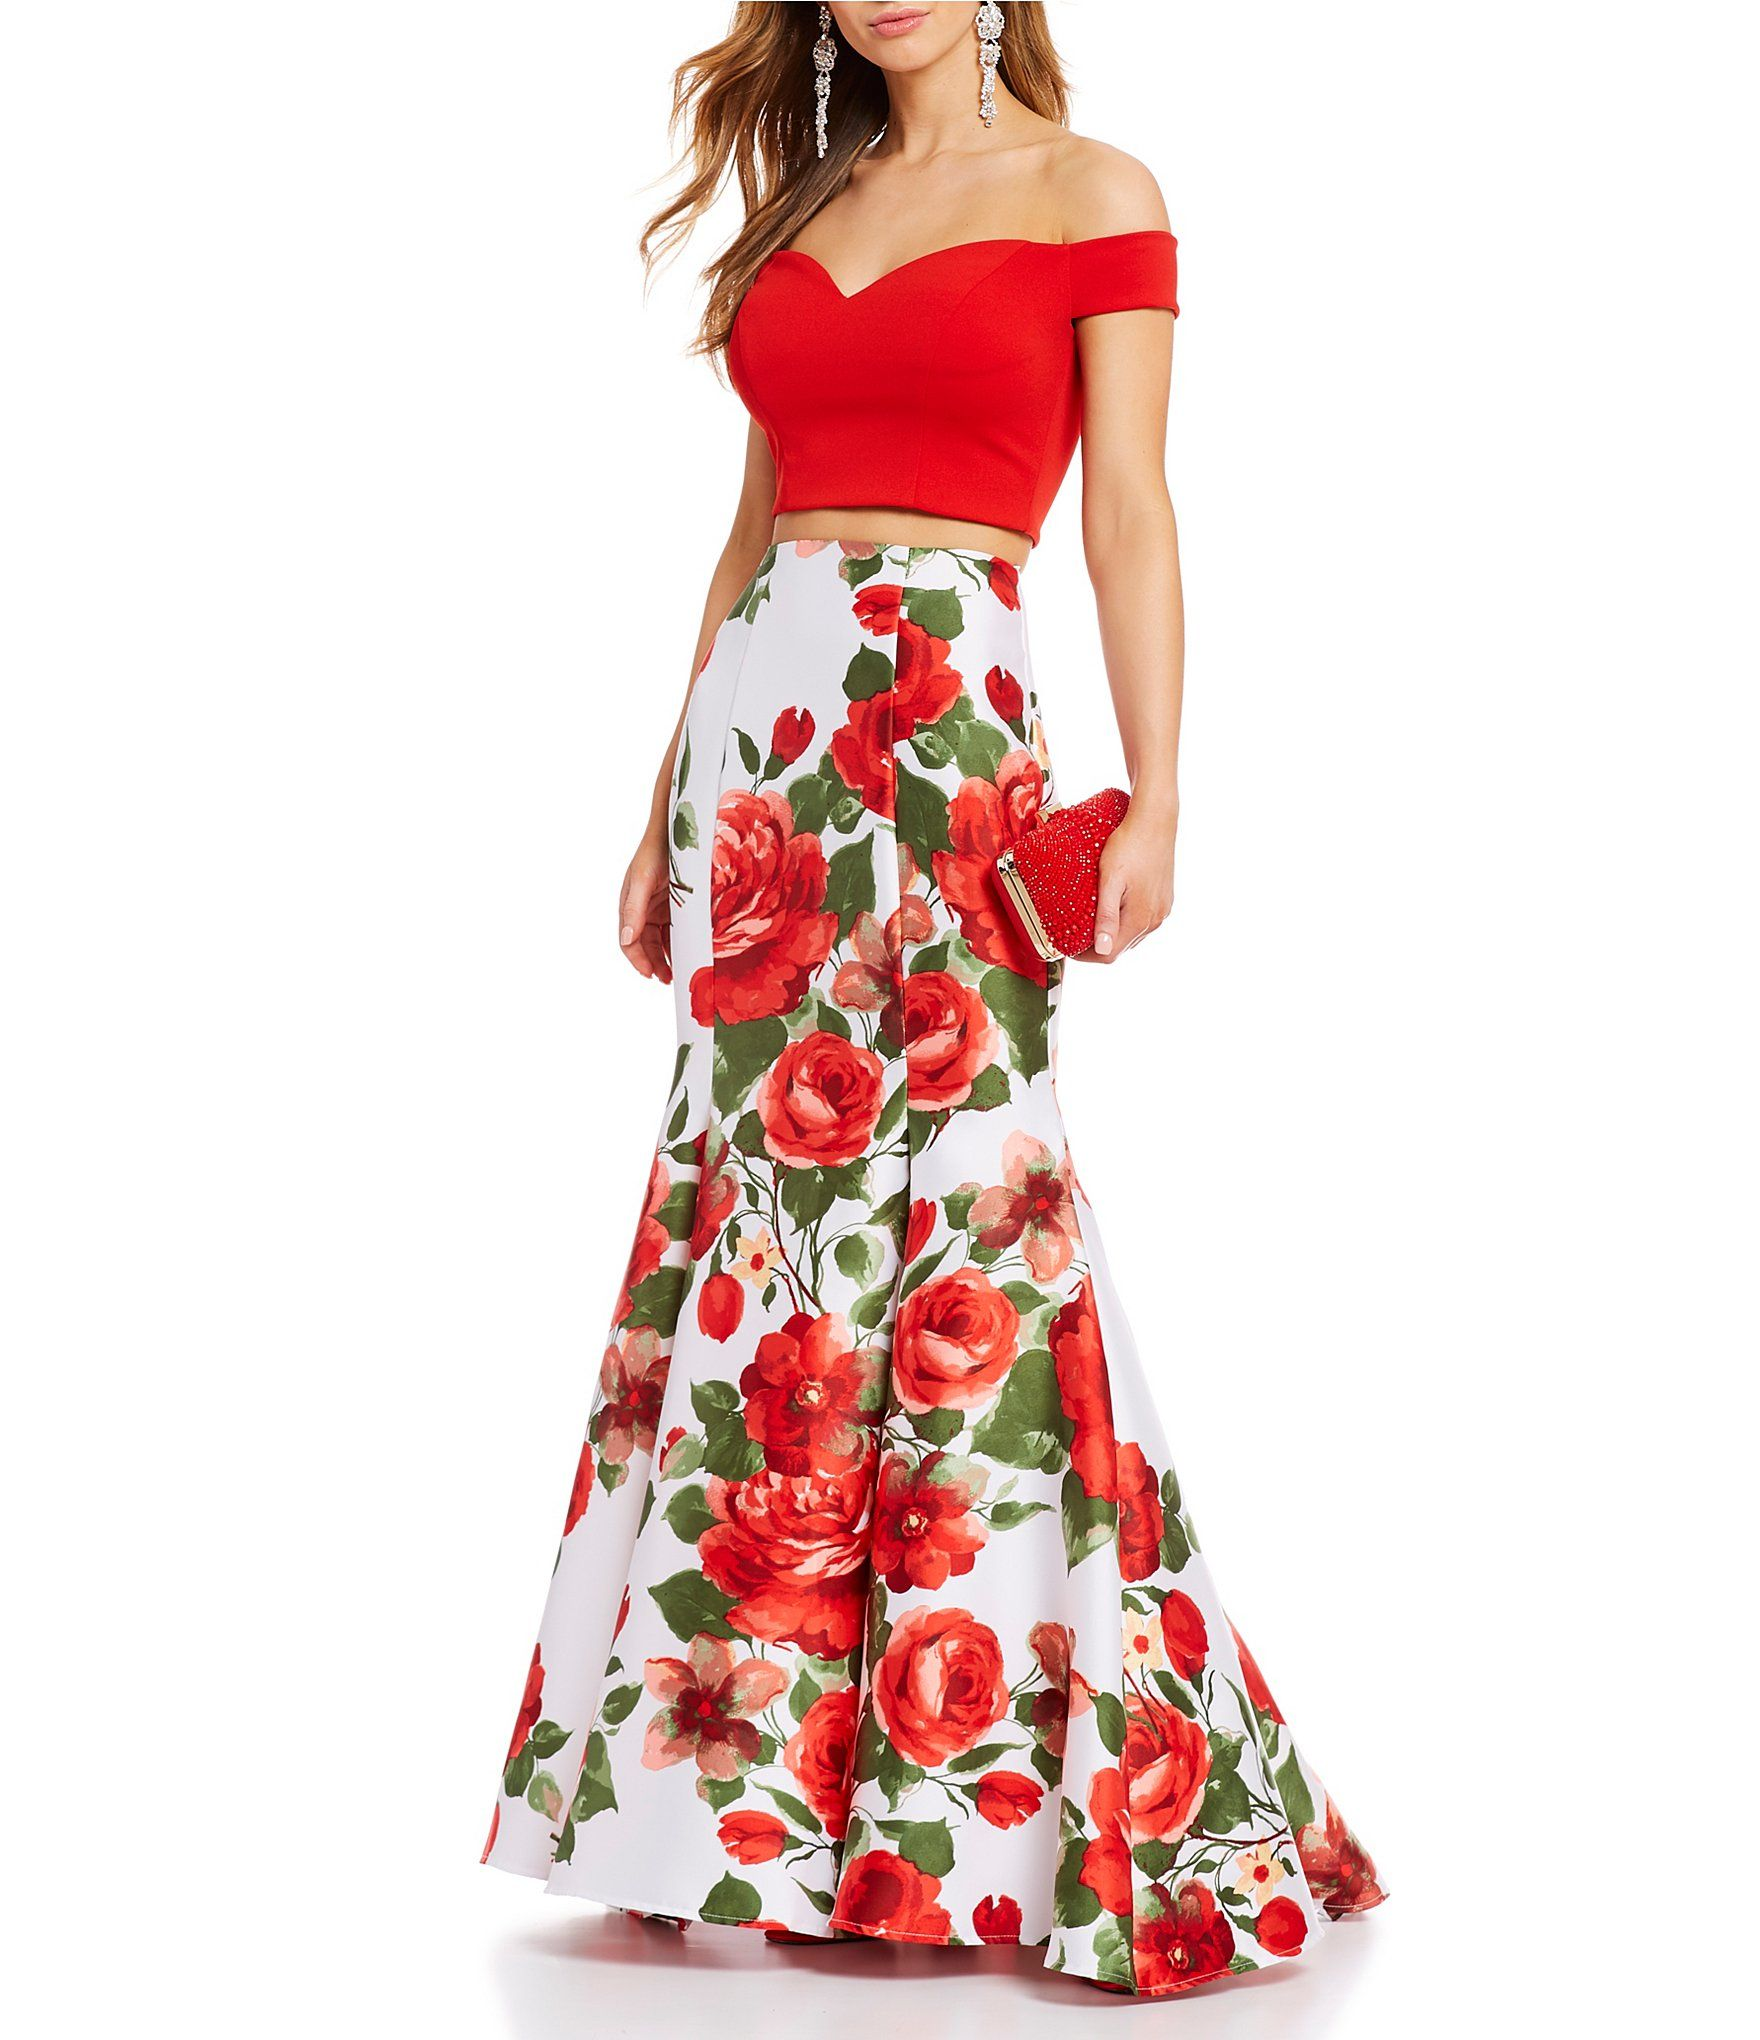 5f5cd3127ff6 B. Darlin Off-The-Shoulder Top with Floral Trumpet Skirt Two-Piece Dress |  Dillard's